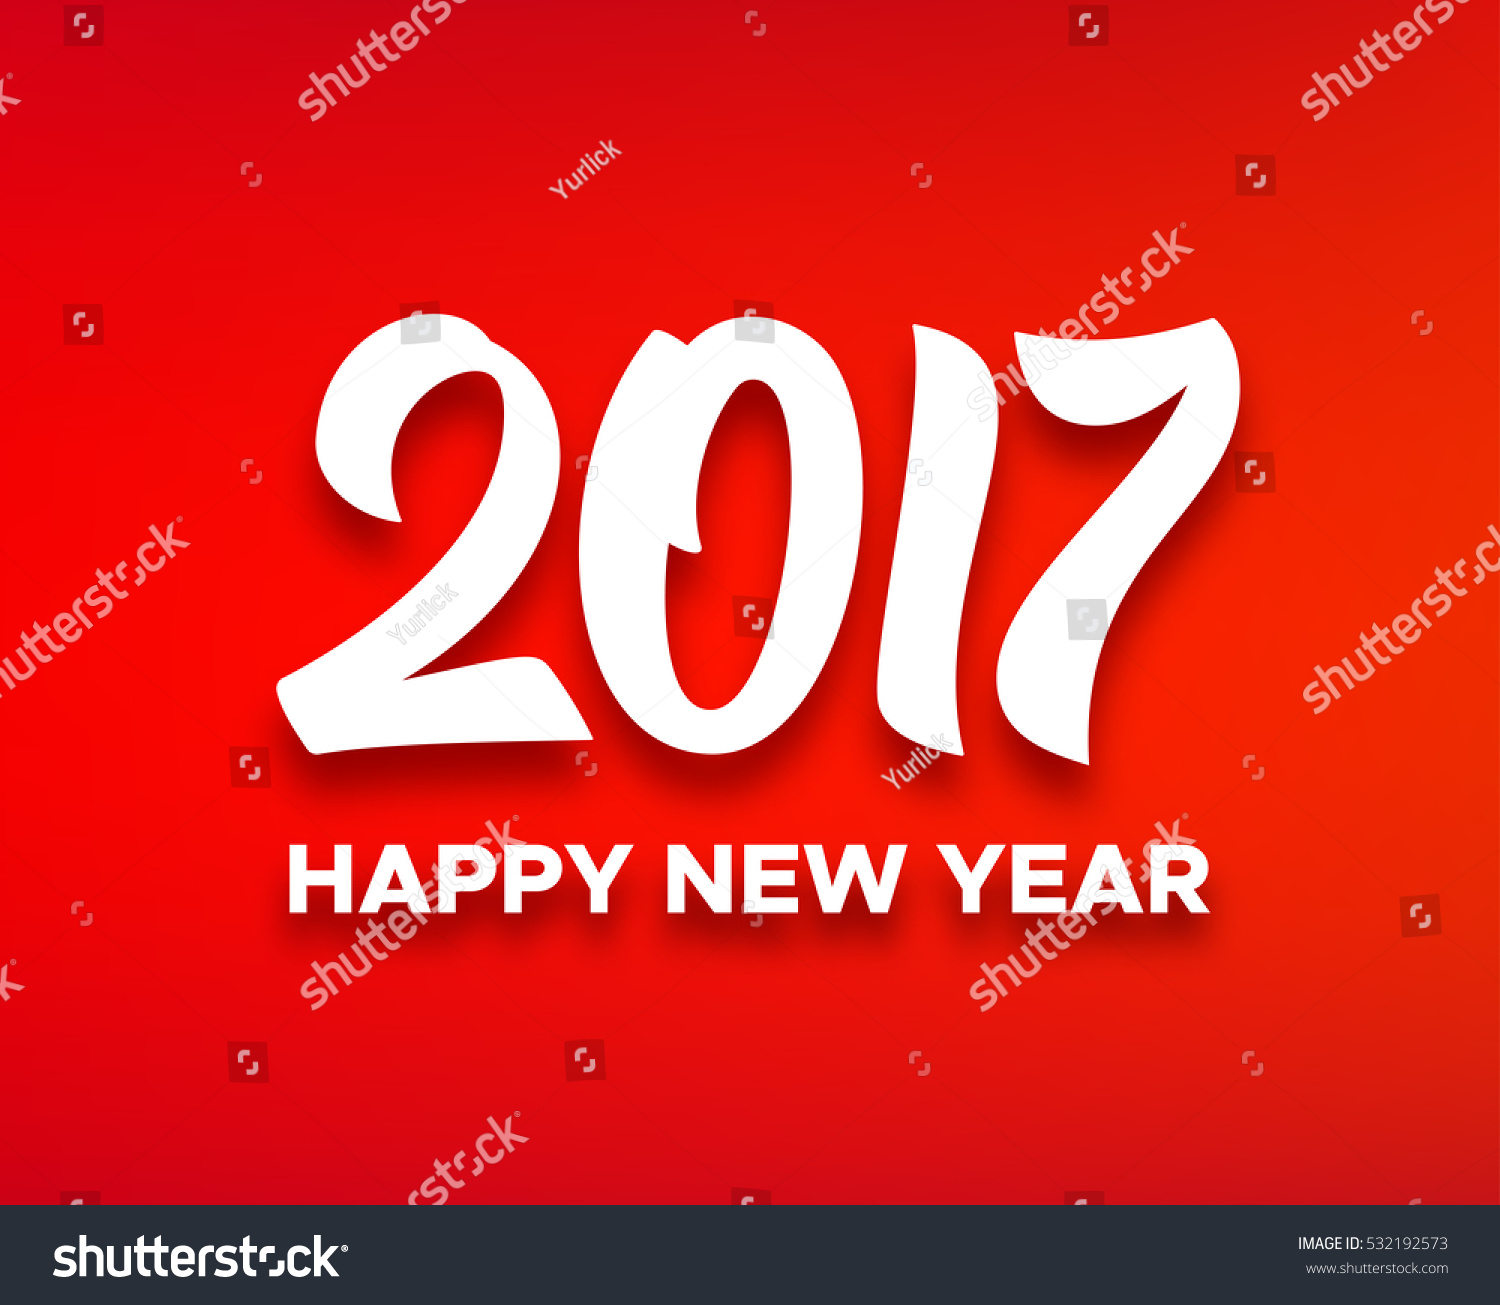 Happy New Year 2017 Greeting Card Design With White Paper Text On